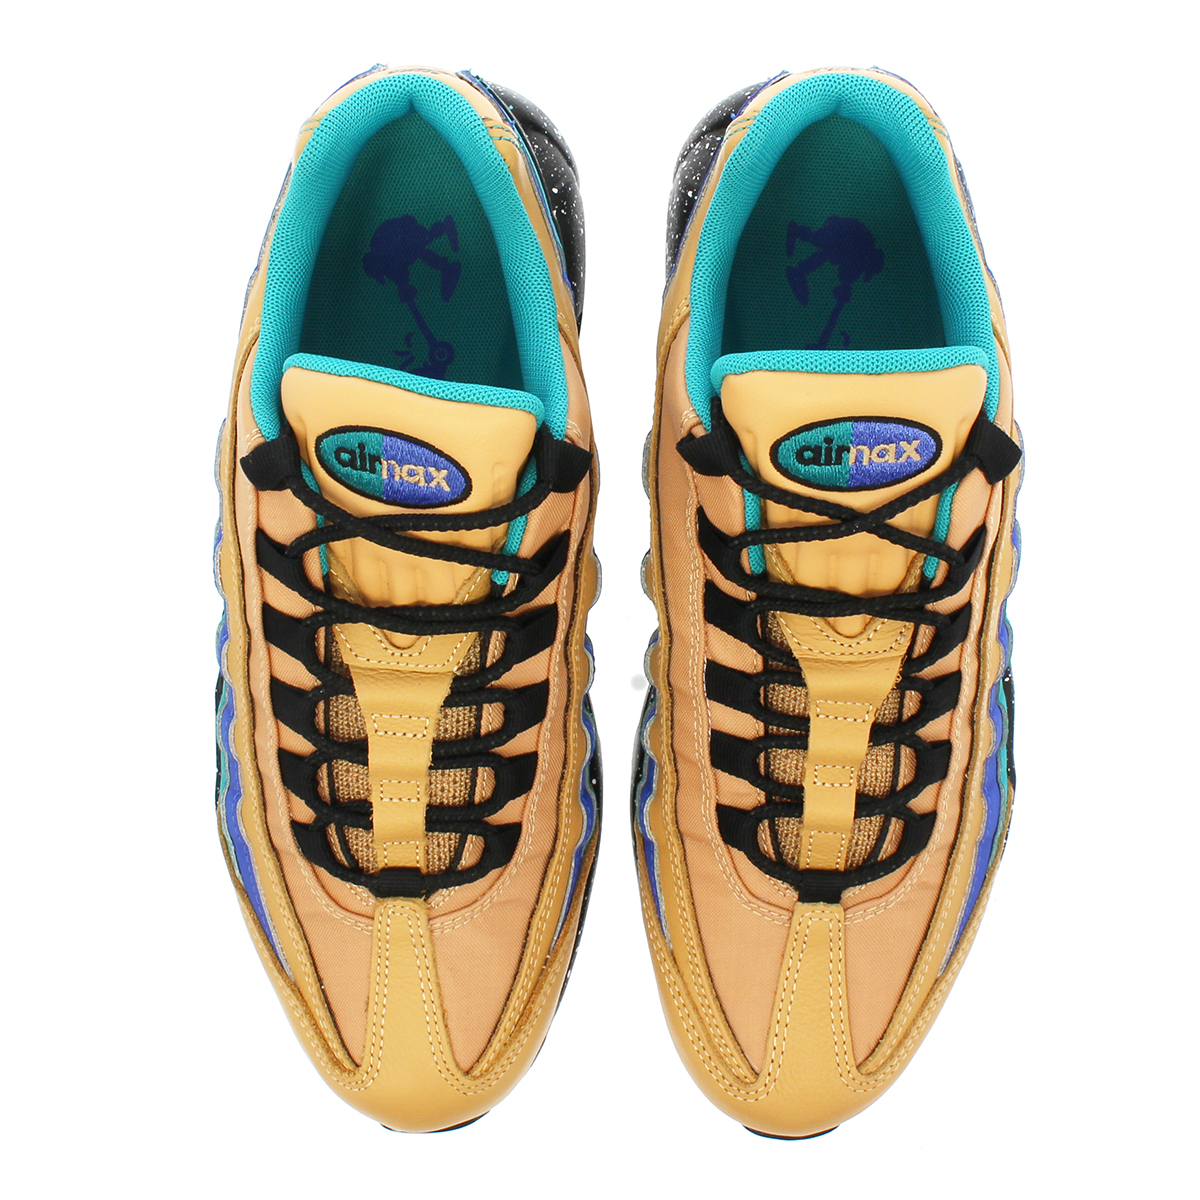 AIR PREMIUM SMALL LOWTEX MAX Ney NIKE 95 SHOP 95 AMAX BIG Kie w4IqZp